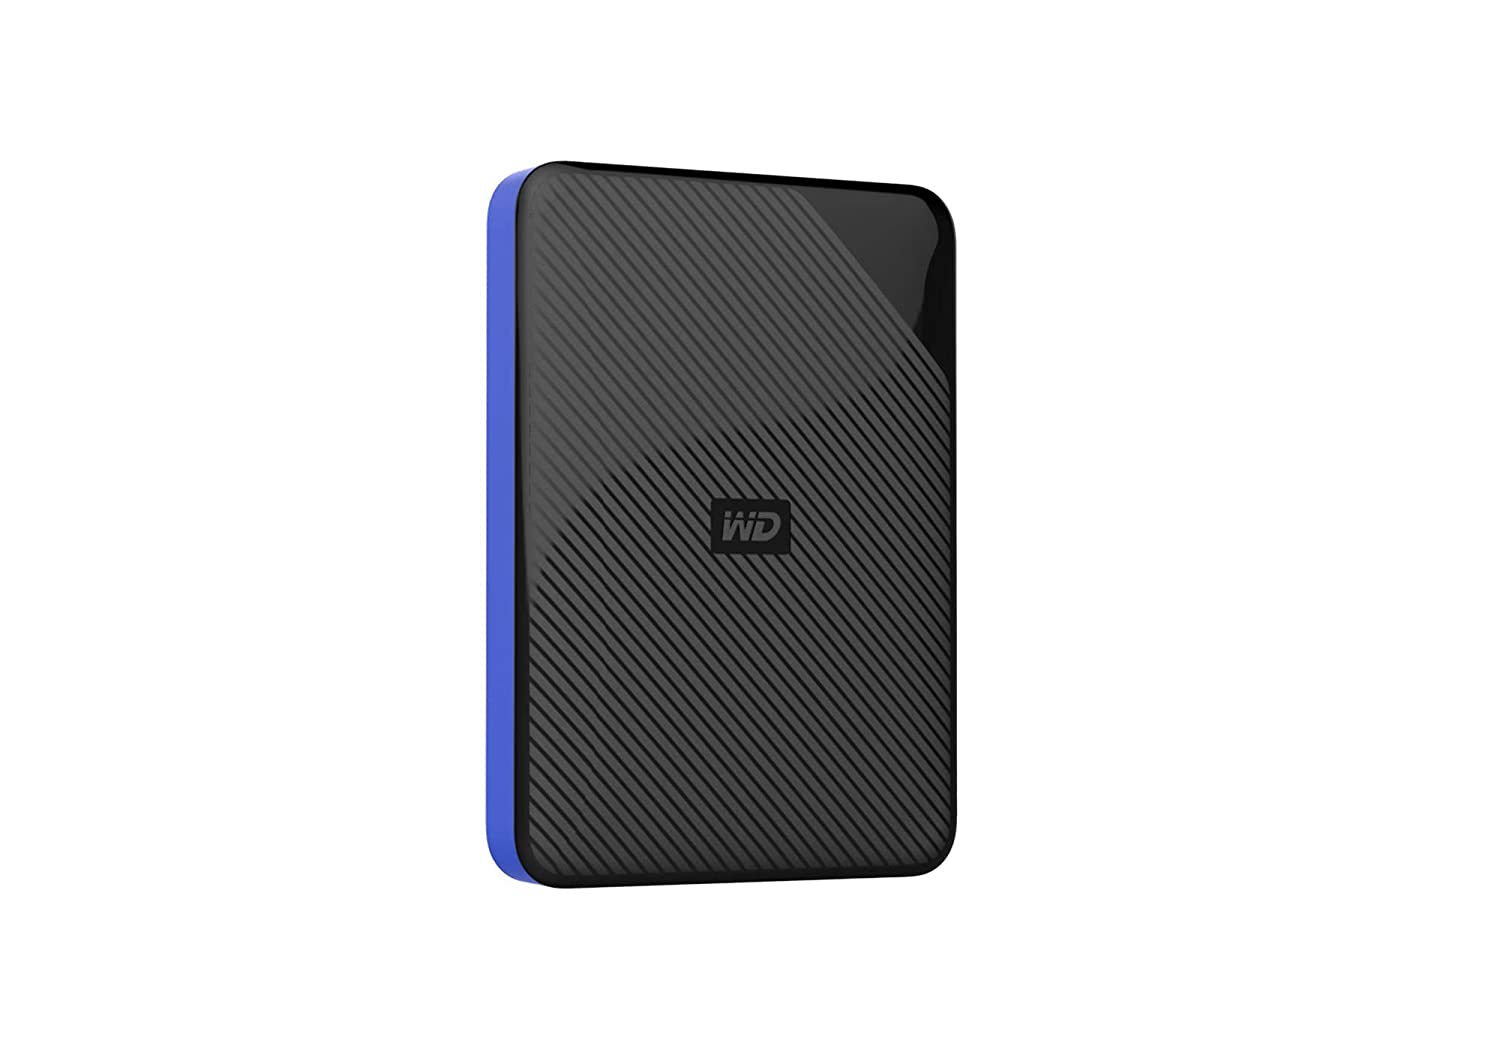 WD 4TB Gaming Drive Works with Playstation 4 Portable External Hard Drive - WDBM1M0040BBK-WESN Western Digital